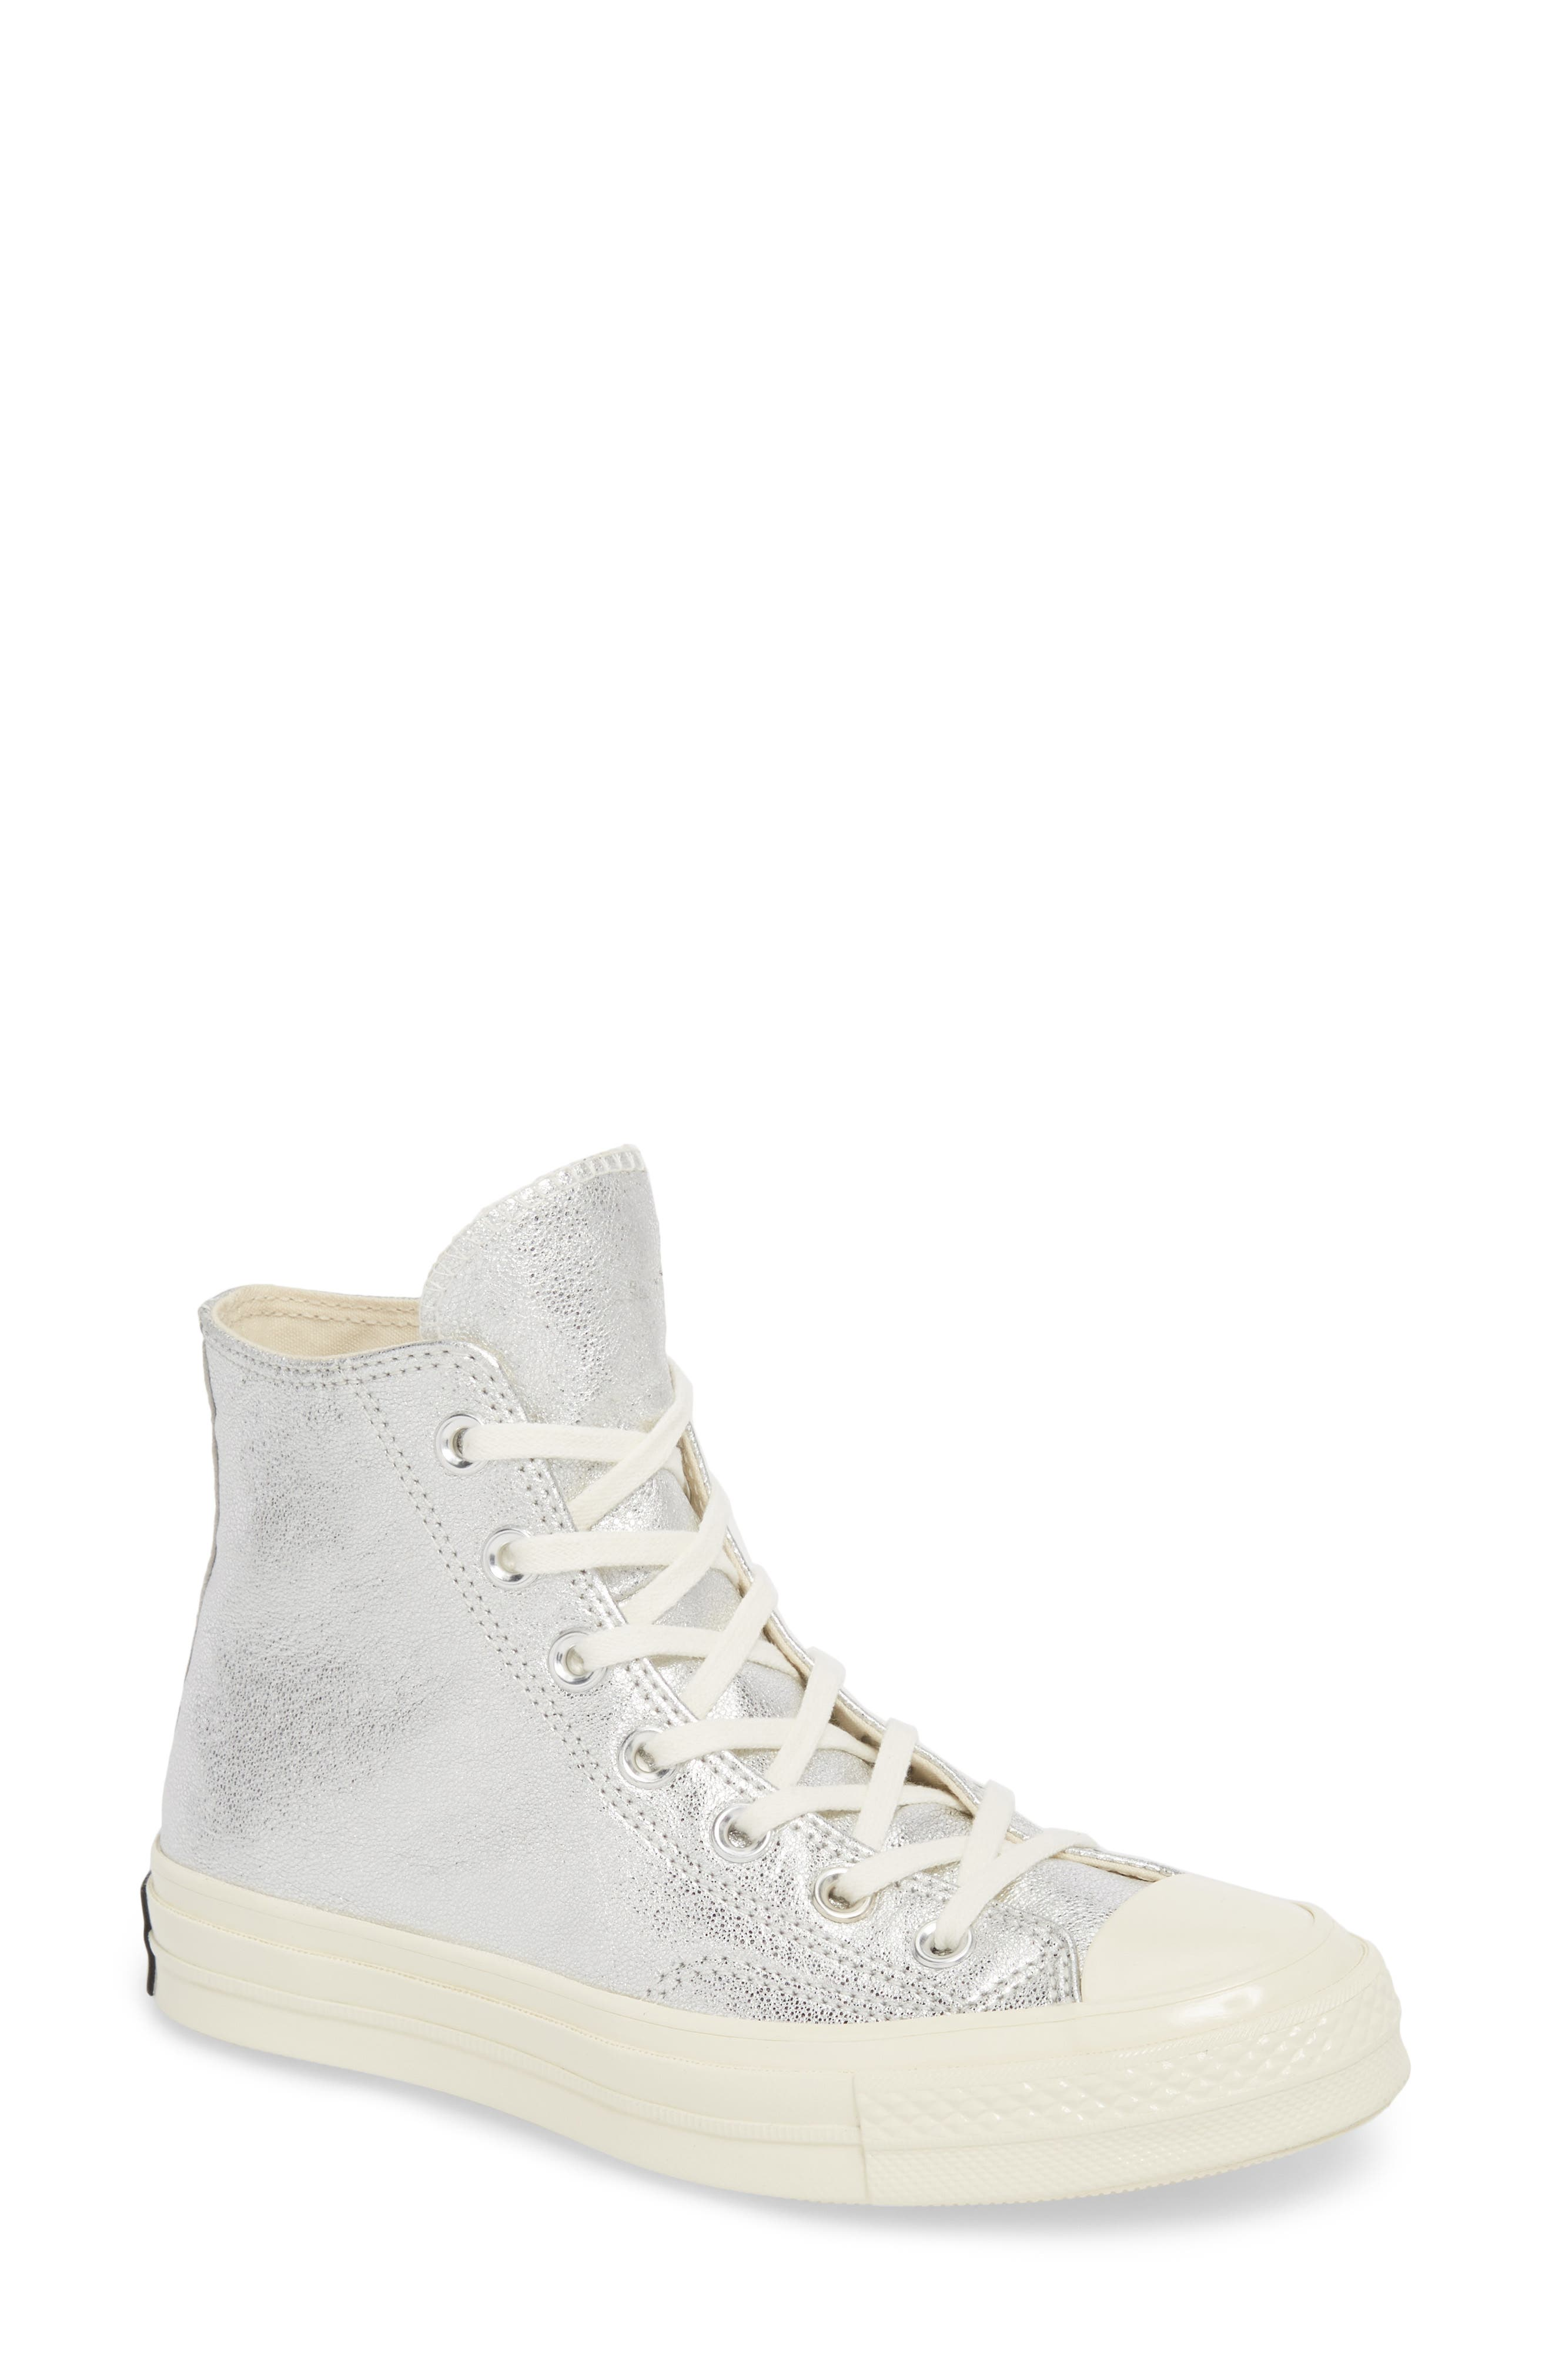 Chuck Taylor<sup>®</sup> All Star<sup>®</sup> Heavy Metal 70 High Top Sneaker,                             Main thumbnail 1, color,